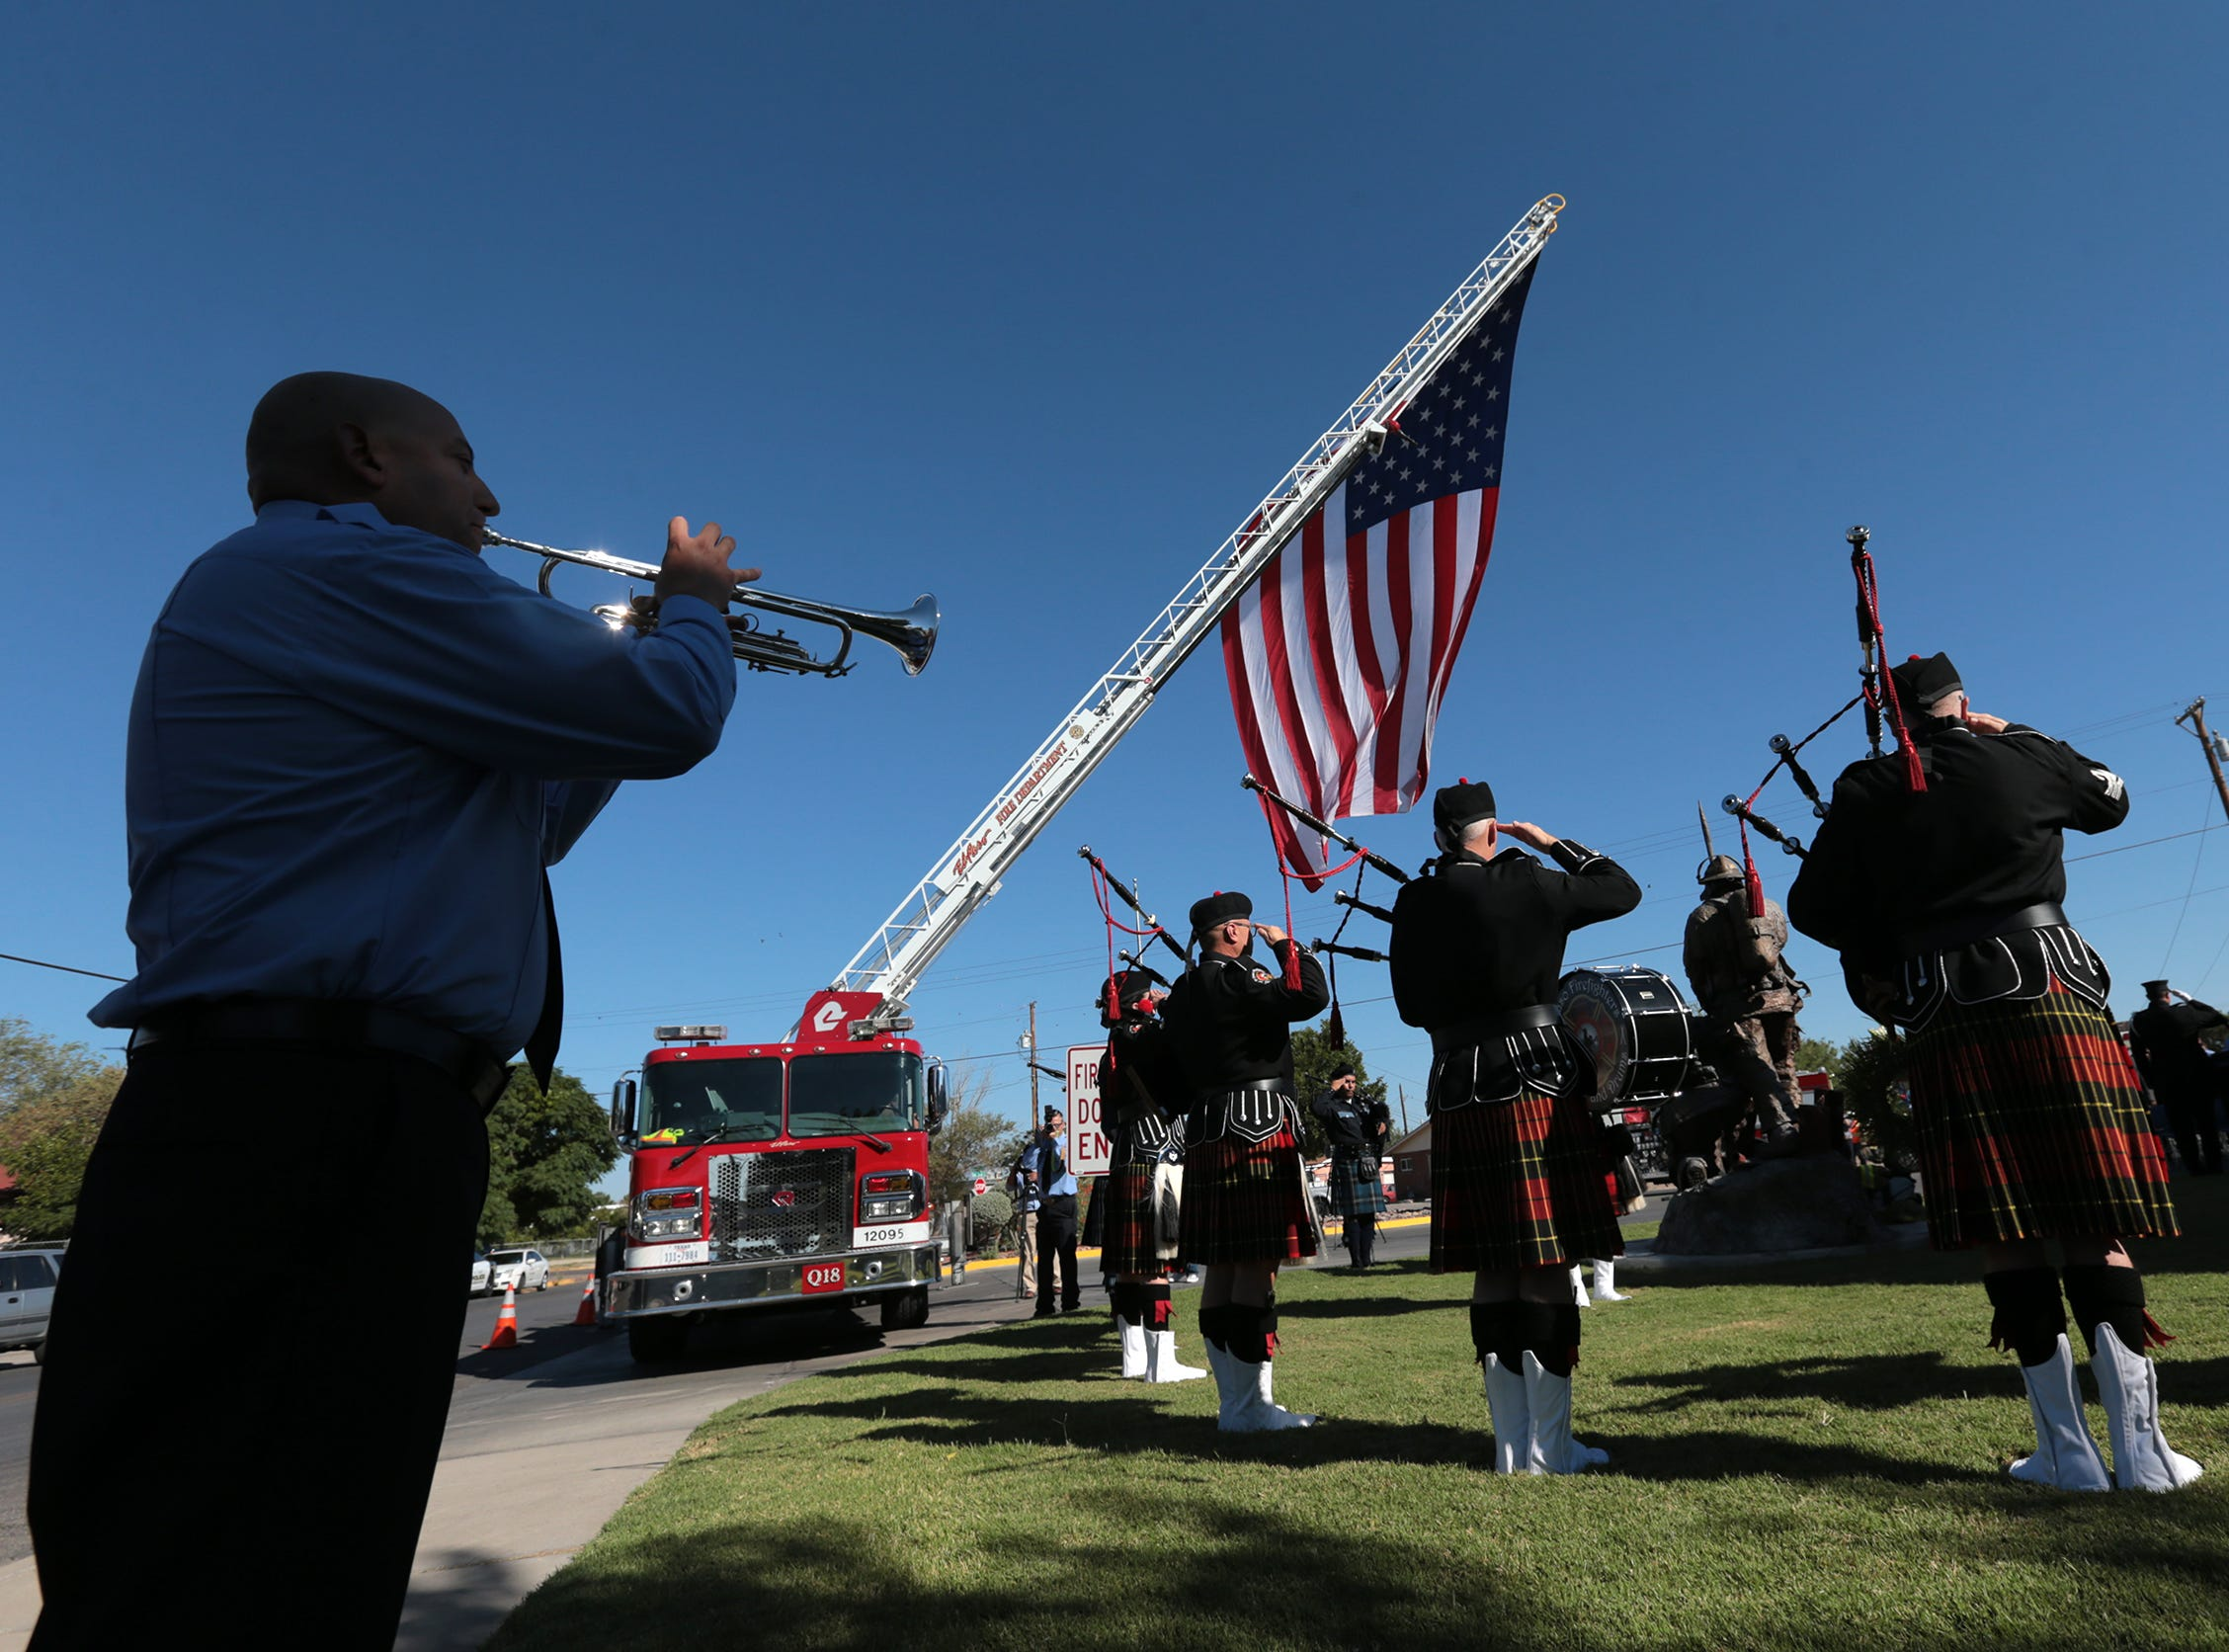 A firefighter plays taps during the 9/11 Memorial Ceremony Tuesday at Fire Station 18.